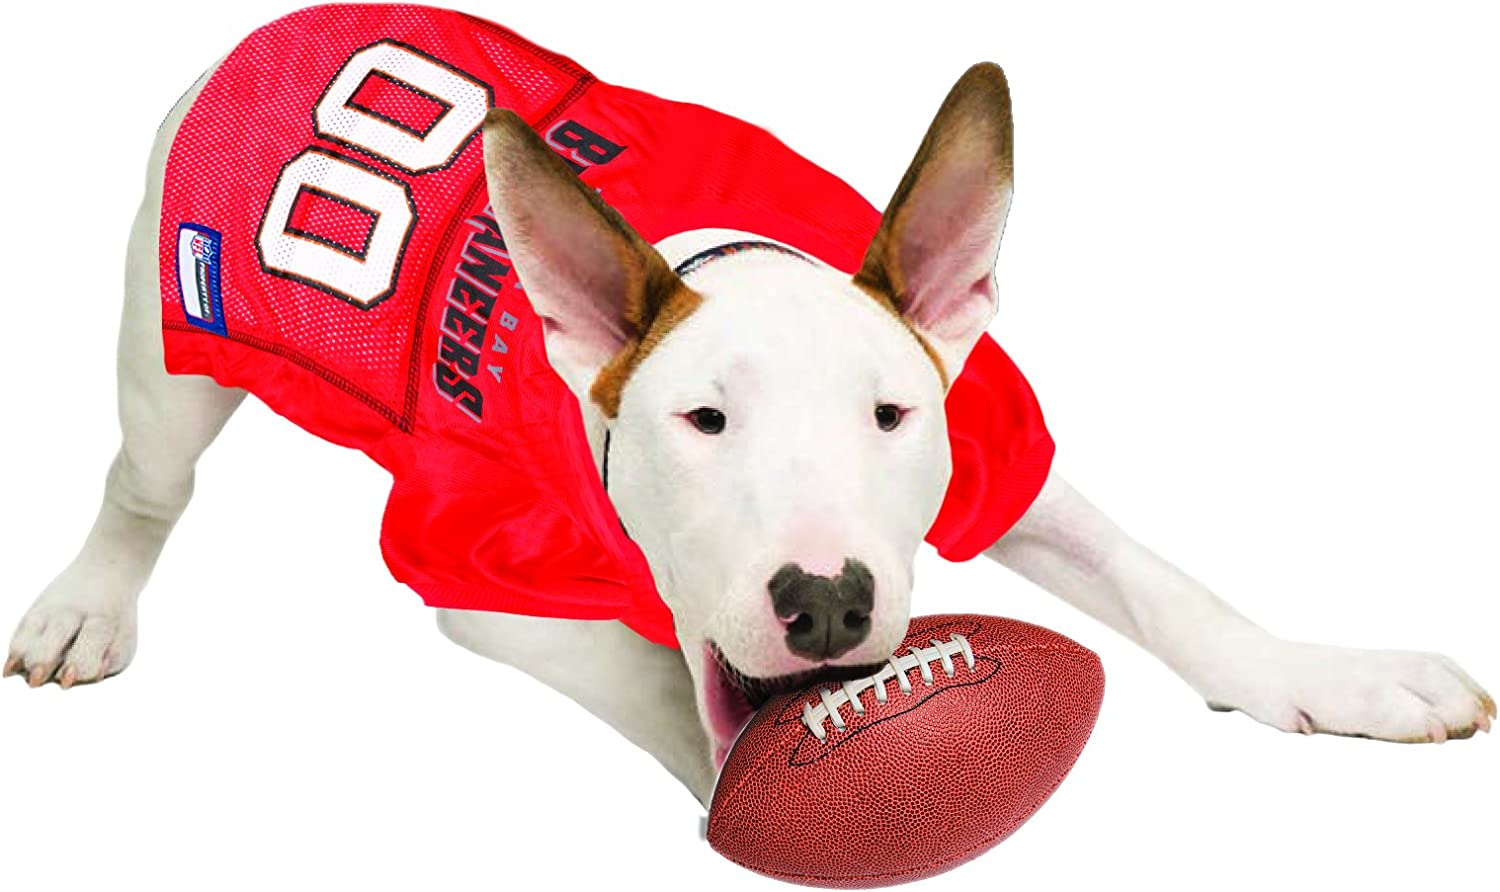 32 NFL Teams Available in 7 Sizes - Sports Mesh Jersey Football Jersey for Dogs Most Comfortable Football Licensed Dog Jersey Cats /& Animals Dog Outfit Shirt Apparel NFL PET Jersey